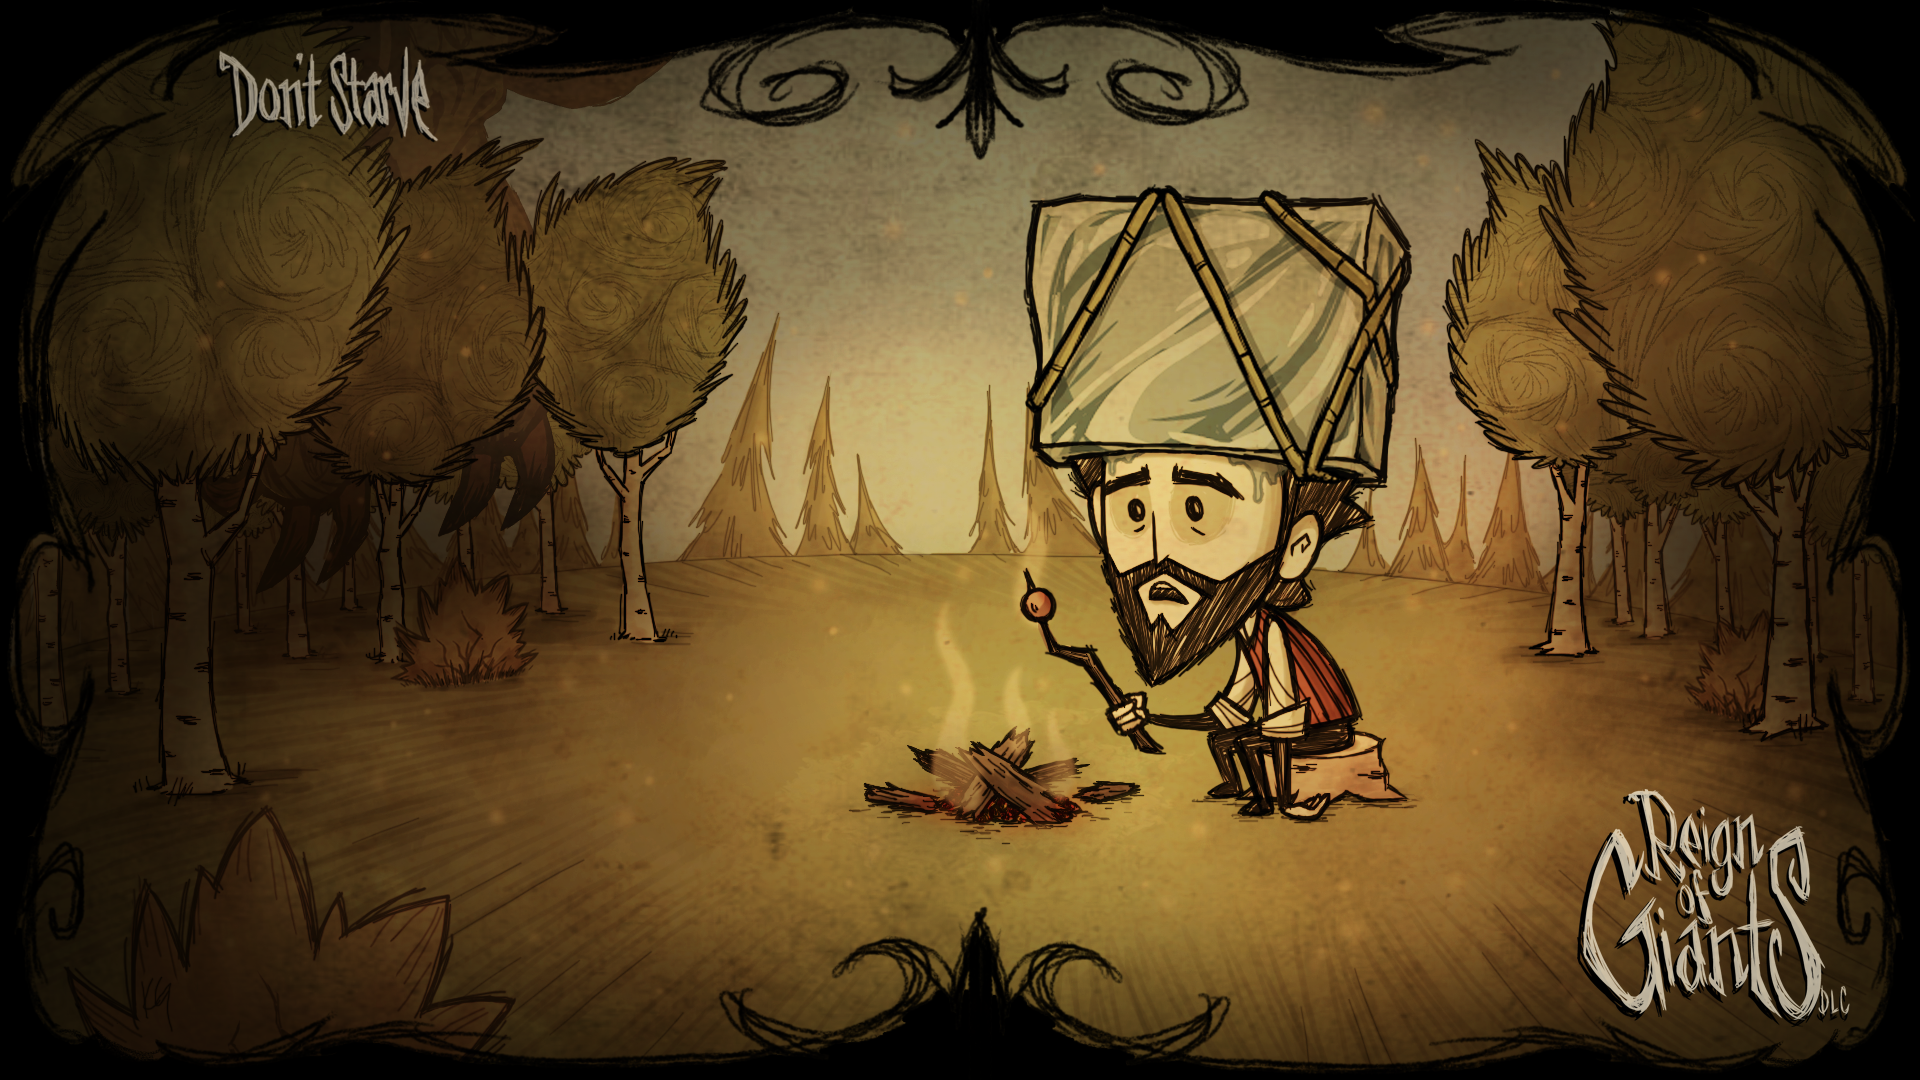 http://www.gamesvillage.it/wp-content/uploads/2014/07/dont-starve-reign-of-giants.png